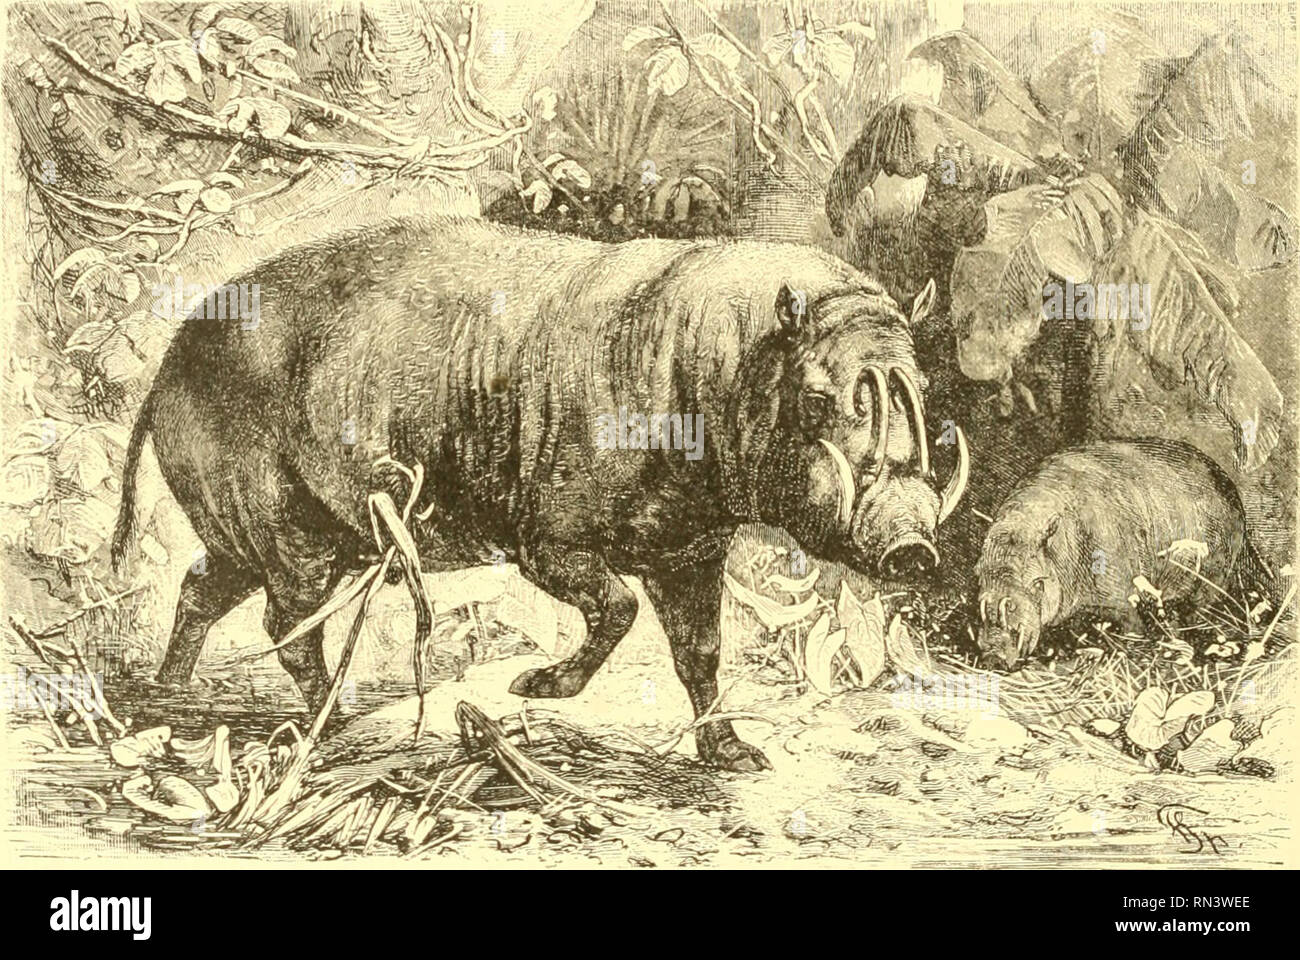 ". Animate creation : popular edition of ""Our living world"" : a natural history. Zoology; Zoology. 61: THE BOSCH YANK. A naval officer who had experienced several encounters with this creature, spoke of it with great respect, and seemed to hold its warlike abilities in some awe. The adult male Baby- roussa is considerably larger than the boar of England, and the officer above mentioned told me that he had seen them ""as large as donkeys. It is a very good swimmer, and will take to the water for its own gratification, swimming considerable distances without any apparent effort. The Stock Photo"